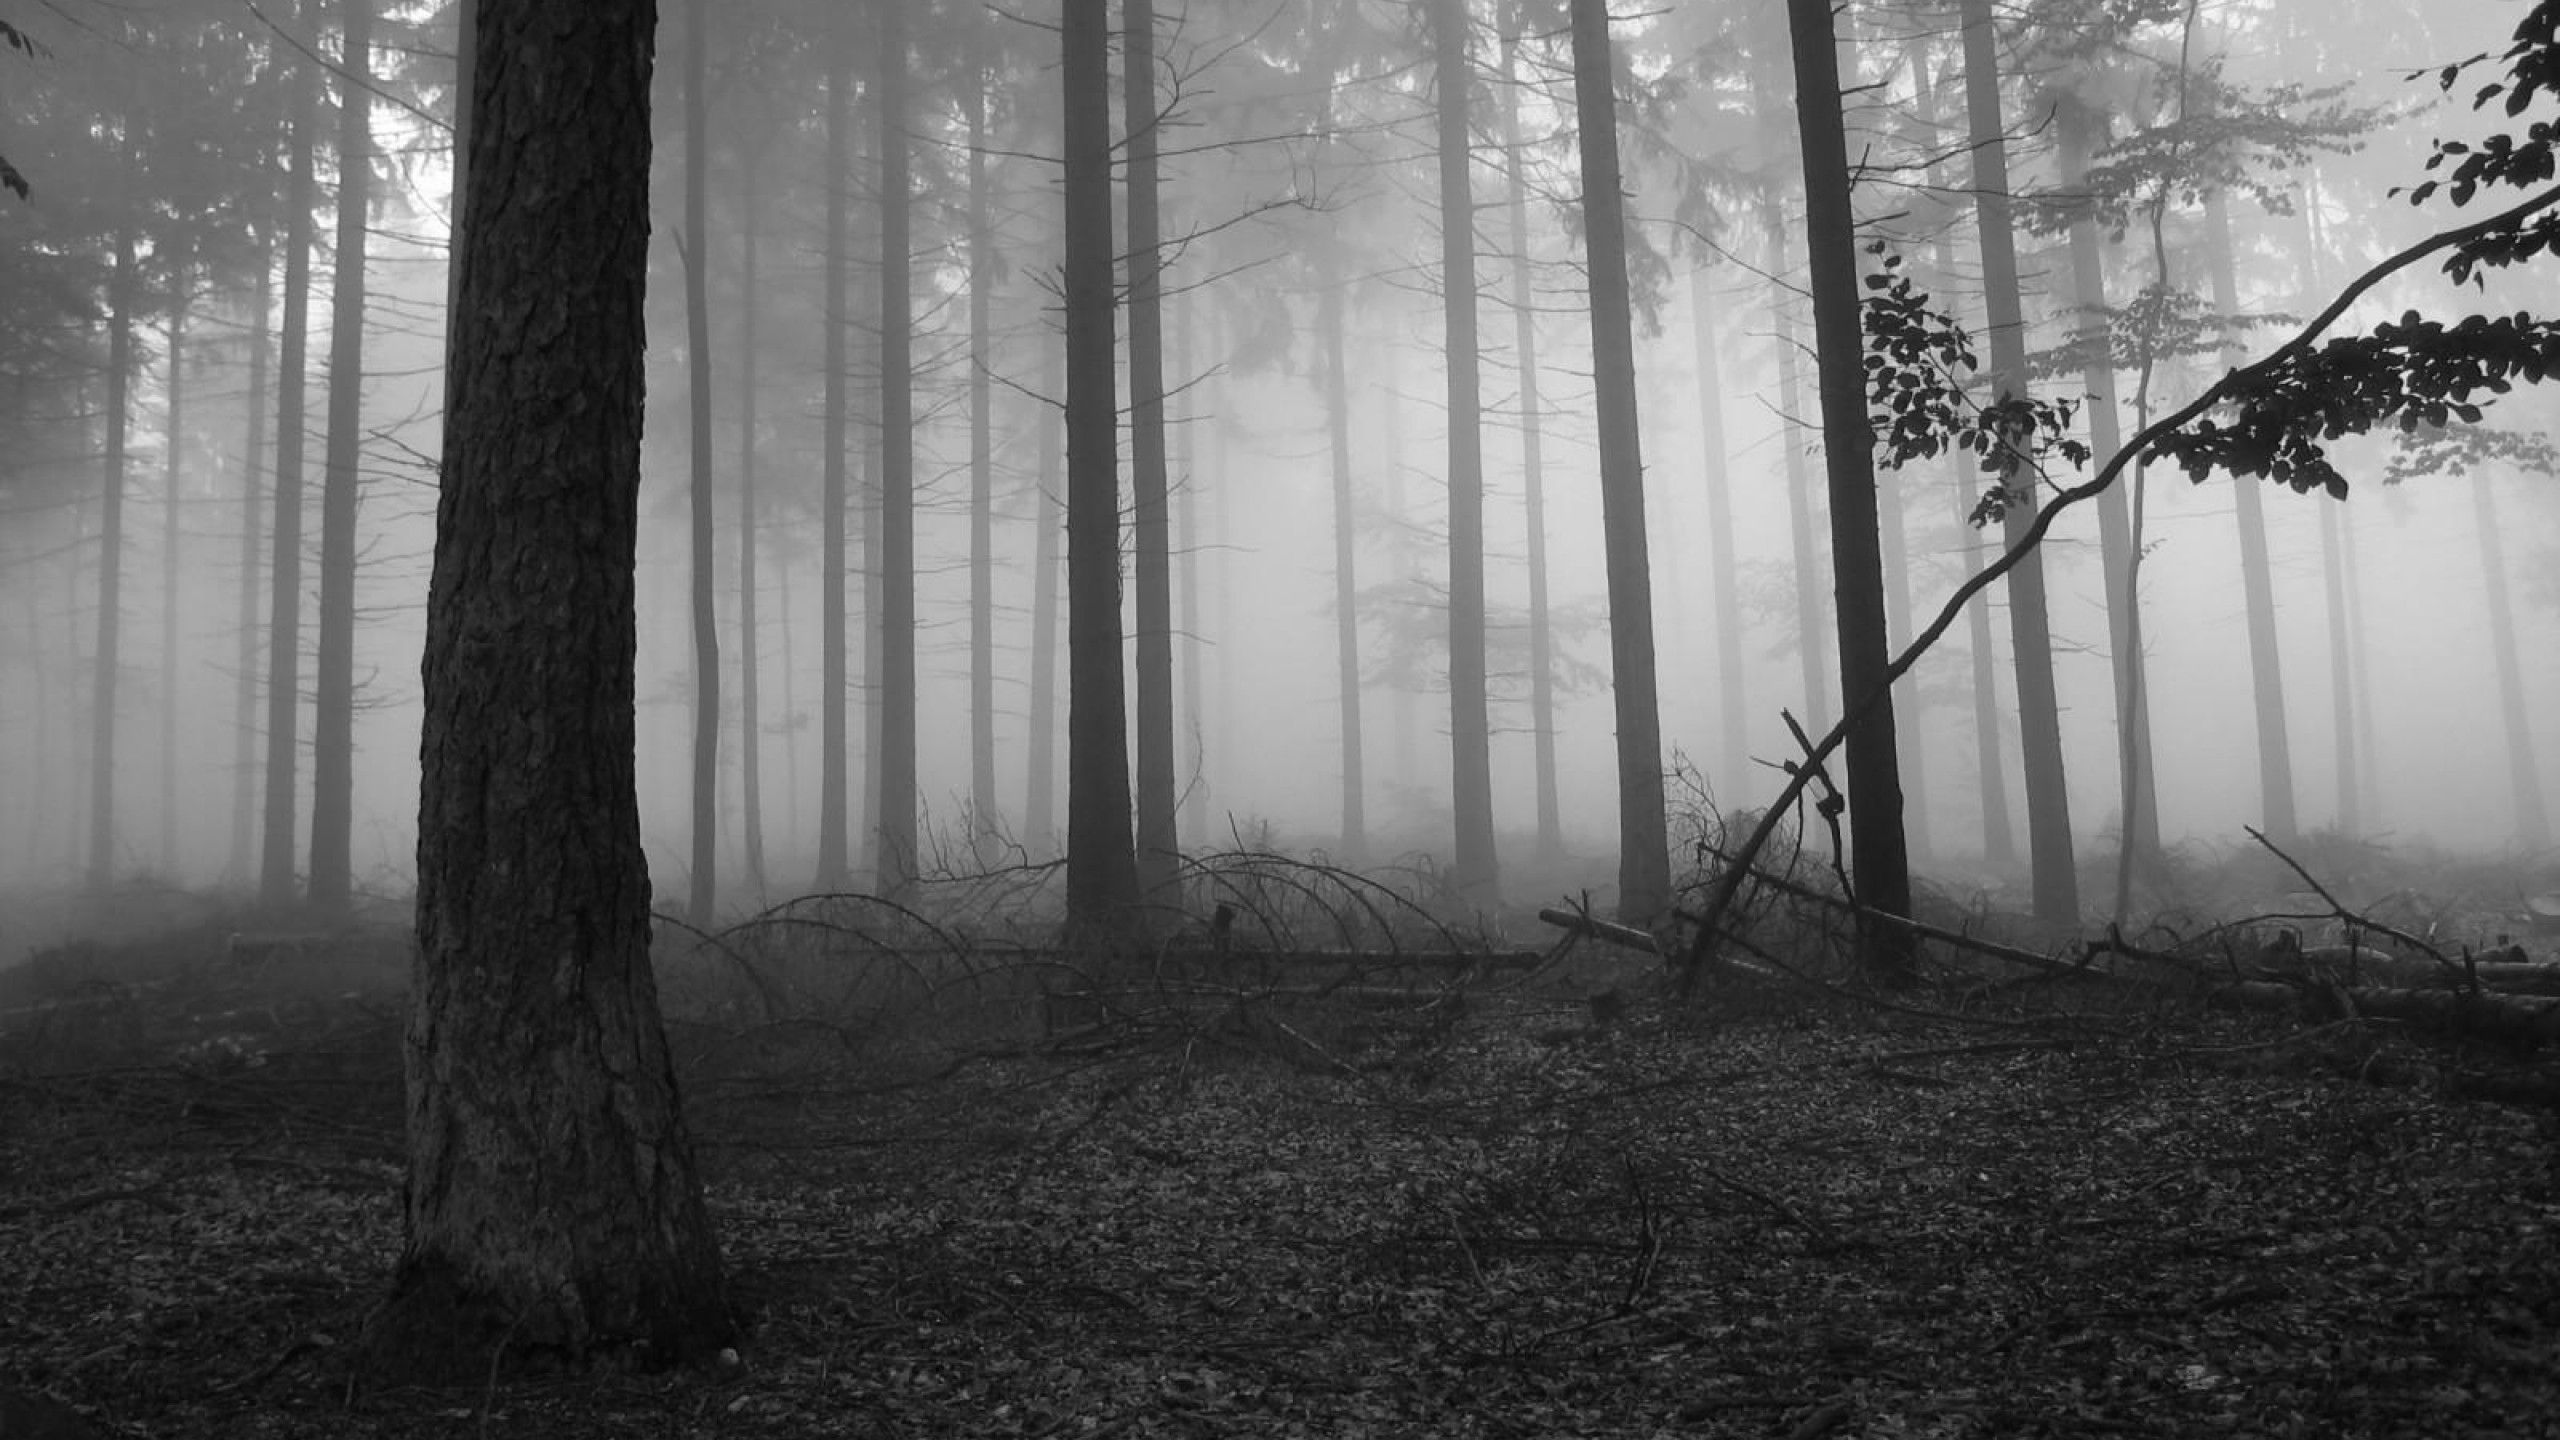 Widescreen Wallpapers of Scary Forest, New Photos